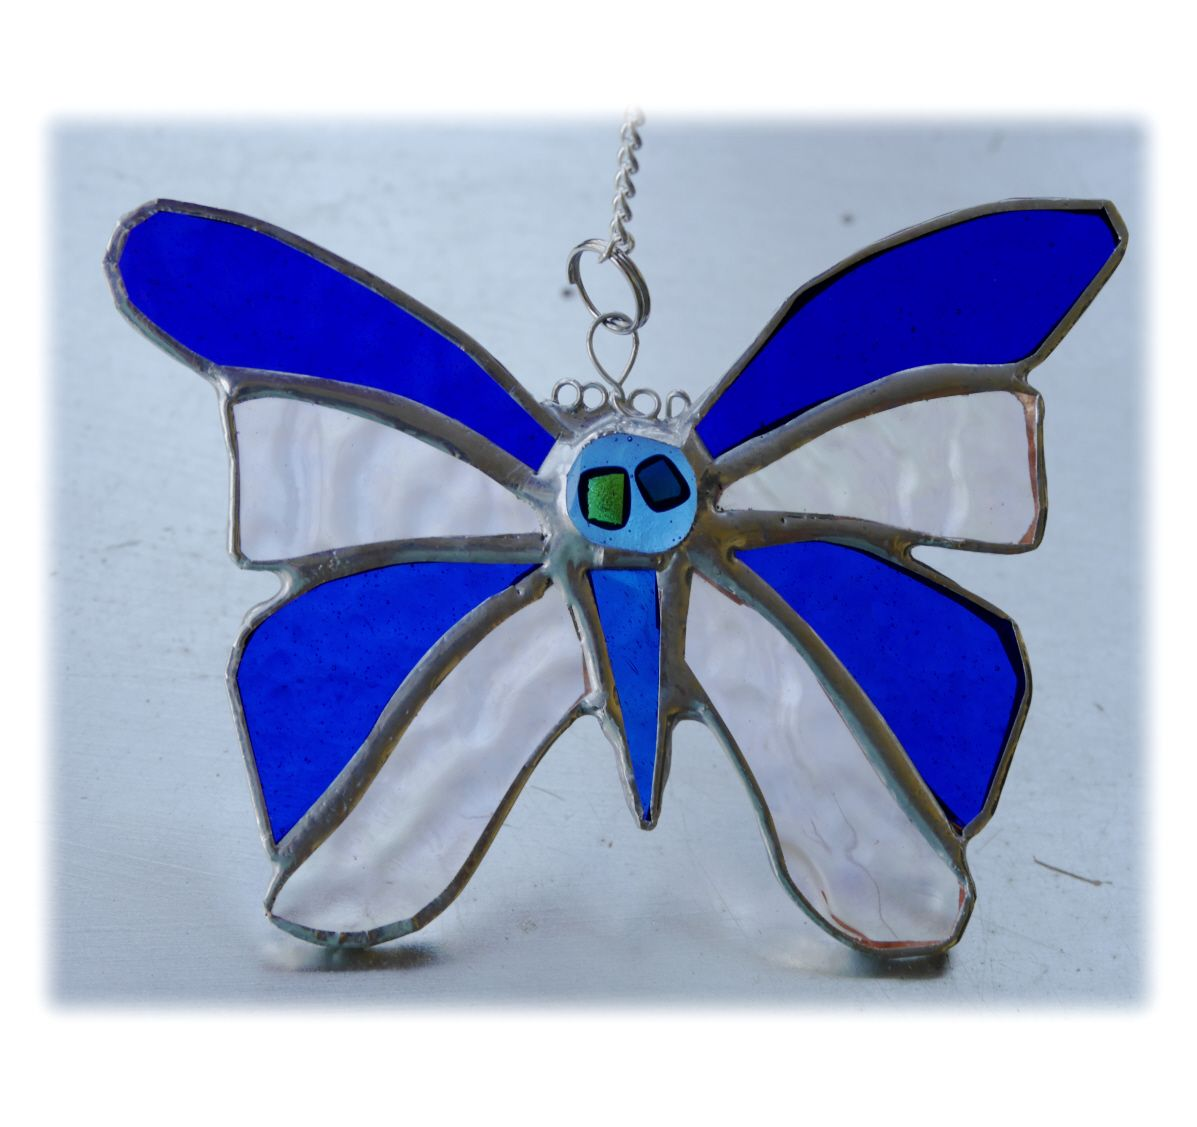 BLUE Birthstone Butterfly 046 Sapphire Sep #1807 FREE 13.00